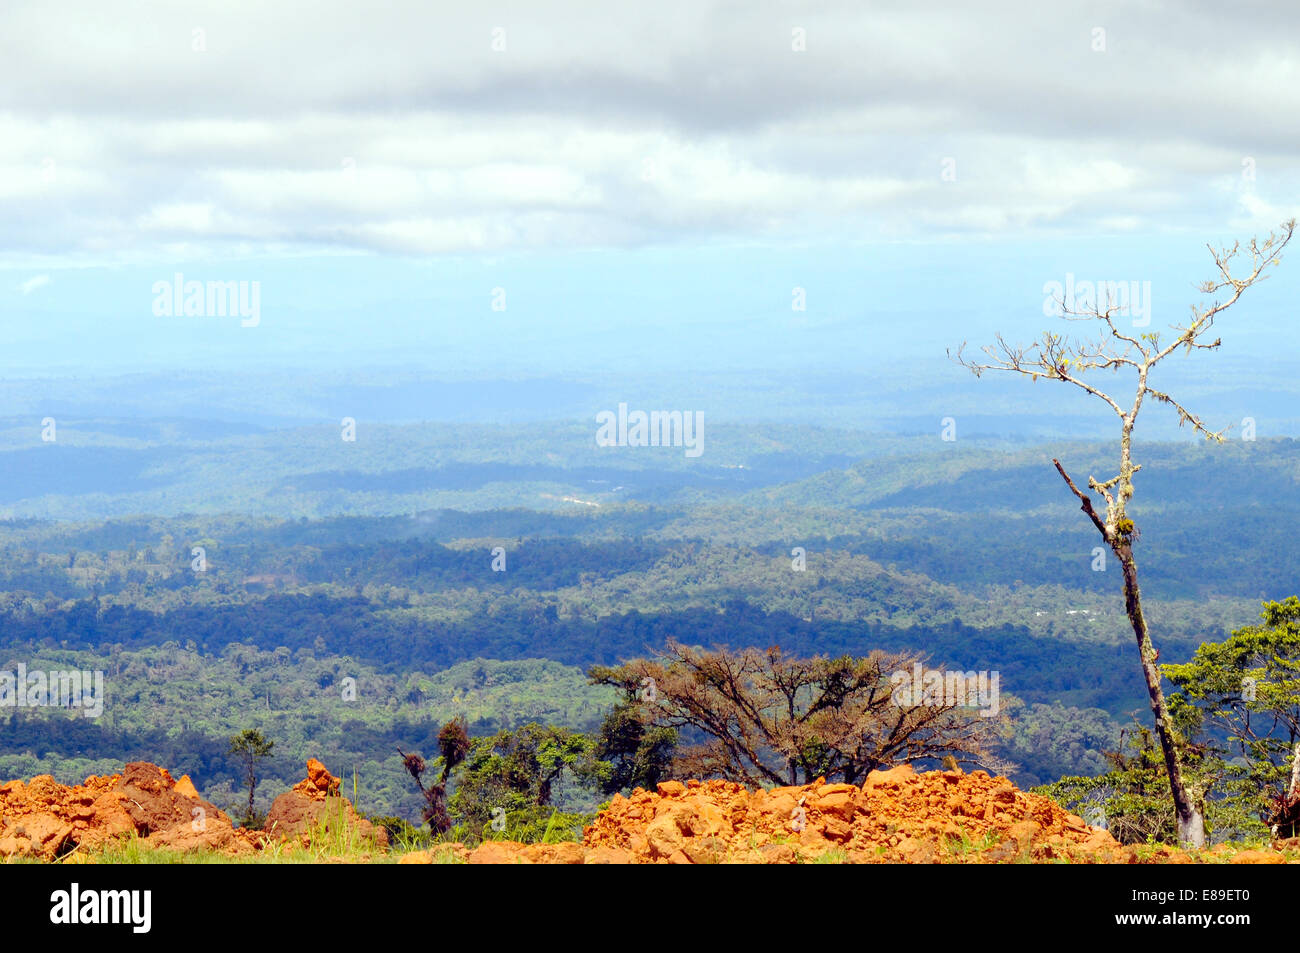 From Andes to Amazon, View of the tropical rainforest, Ecuador Stock Photo